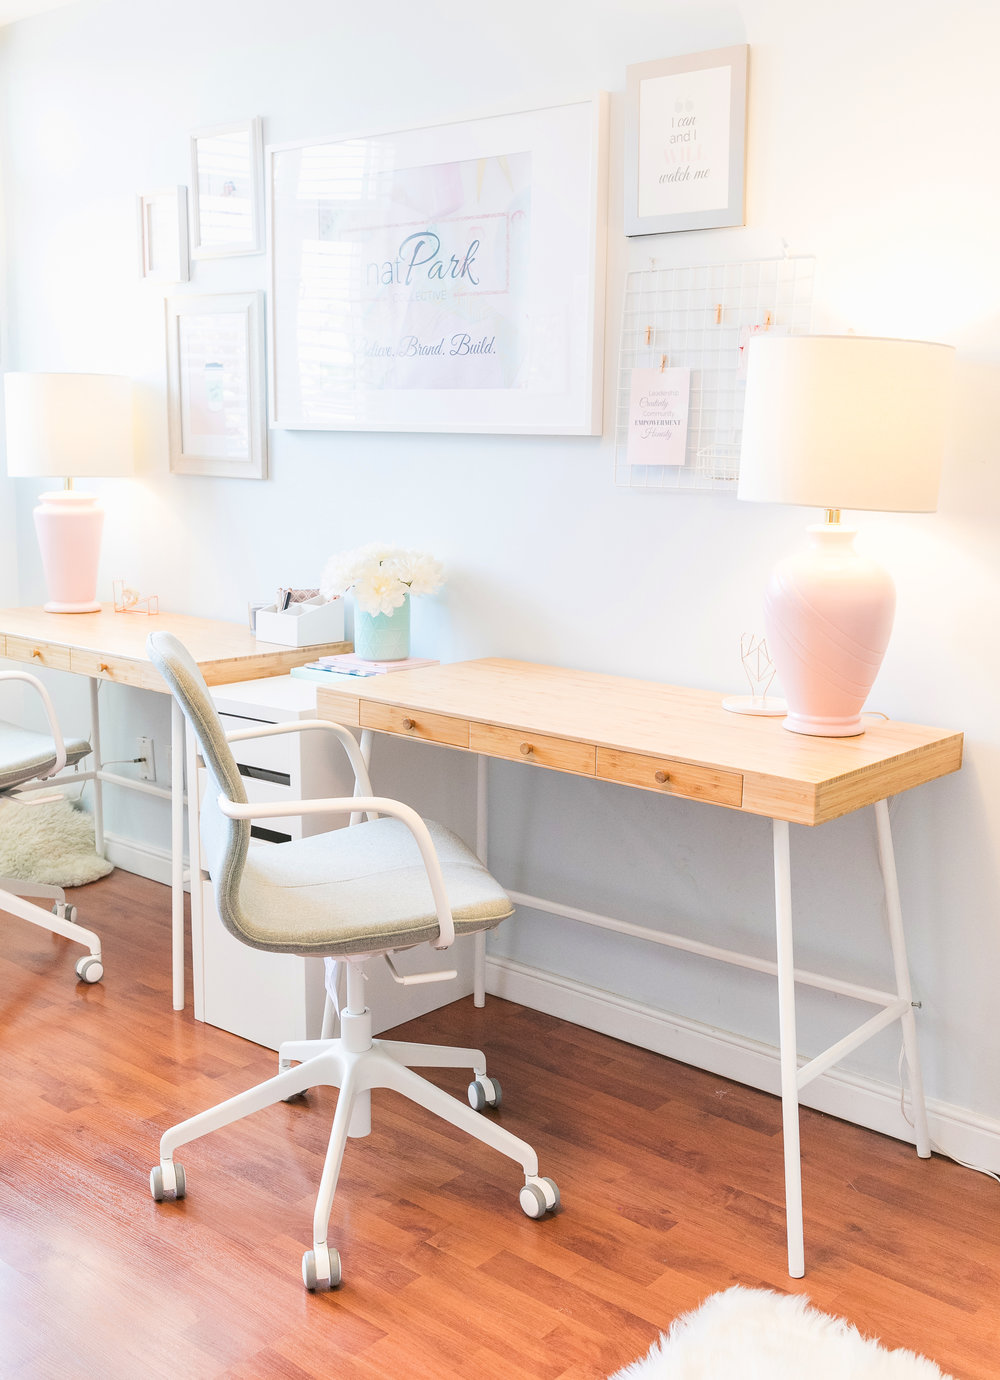 THE FUNKY FRESH / PRETTY OFFICE MAKEOVER